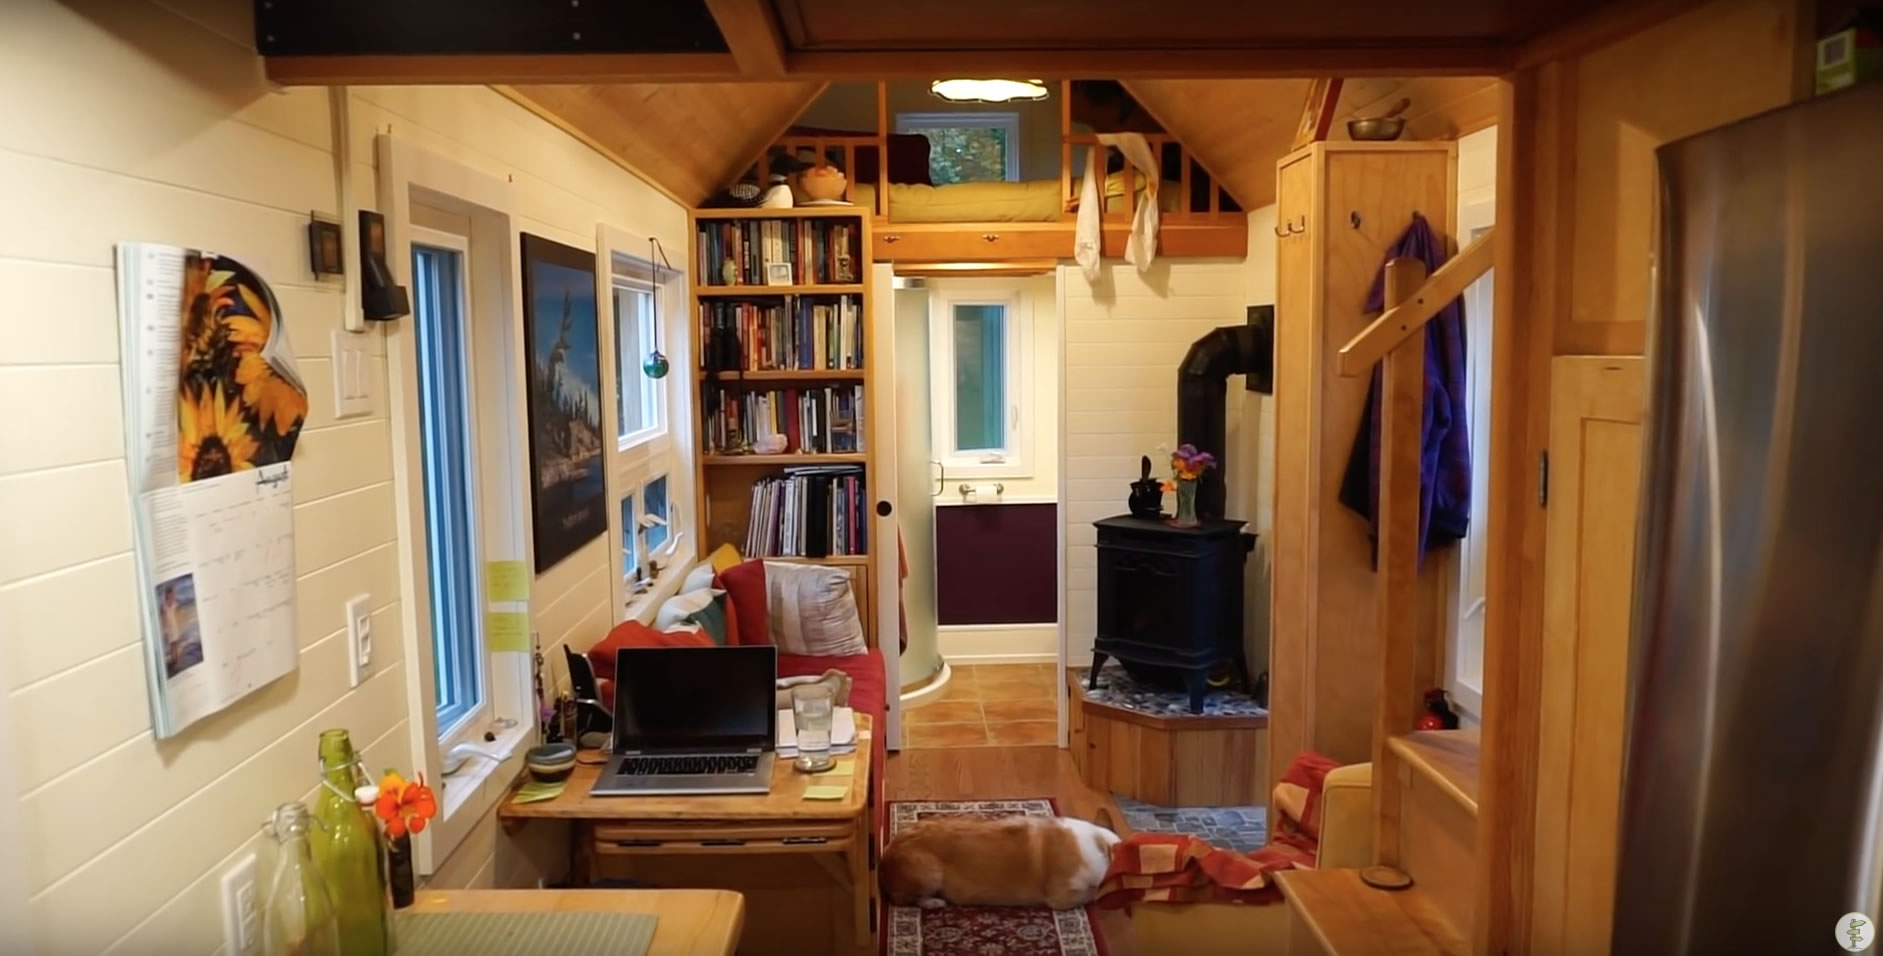 Challenges & Benefits of Tiny House Living